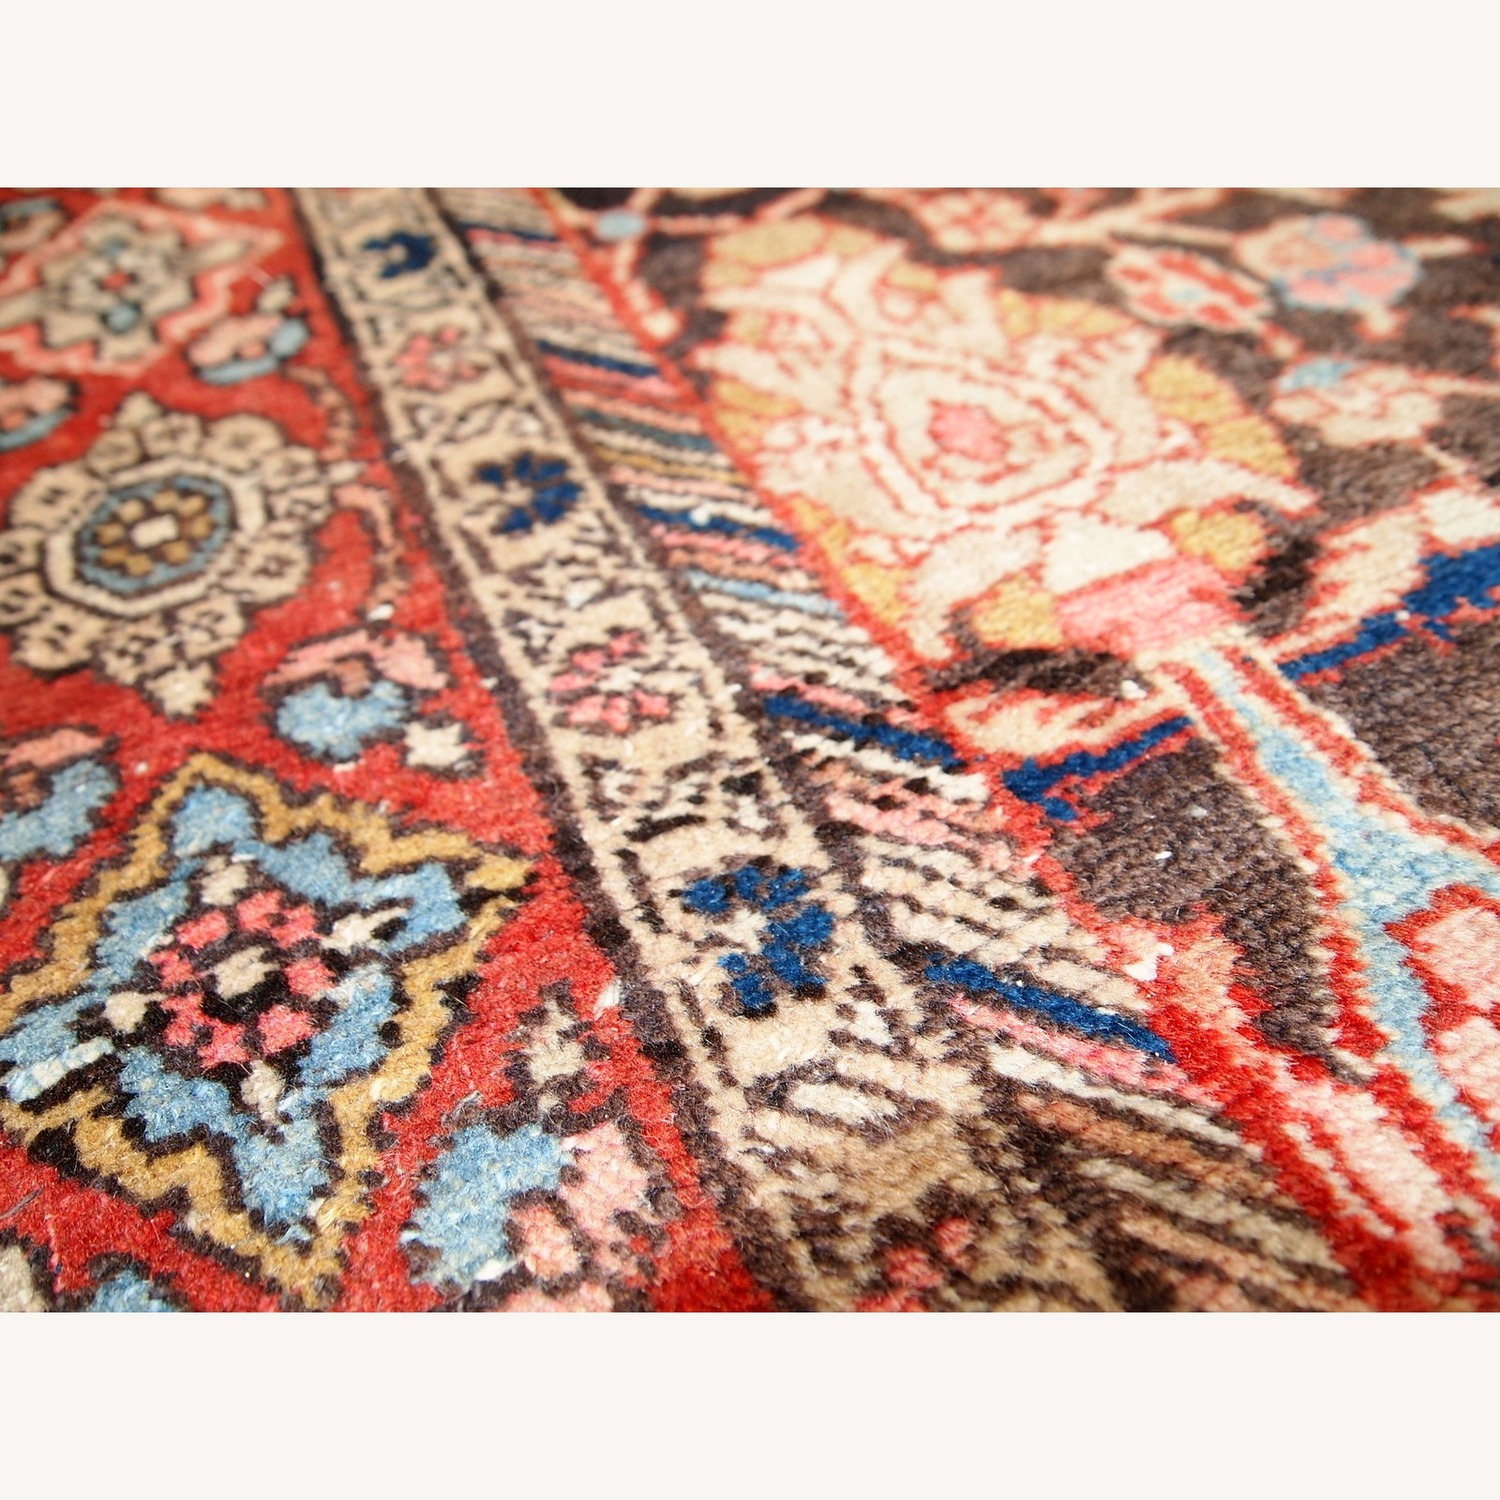 Handmade Antique Persian Bidjar Rug - image-12